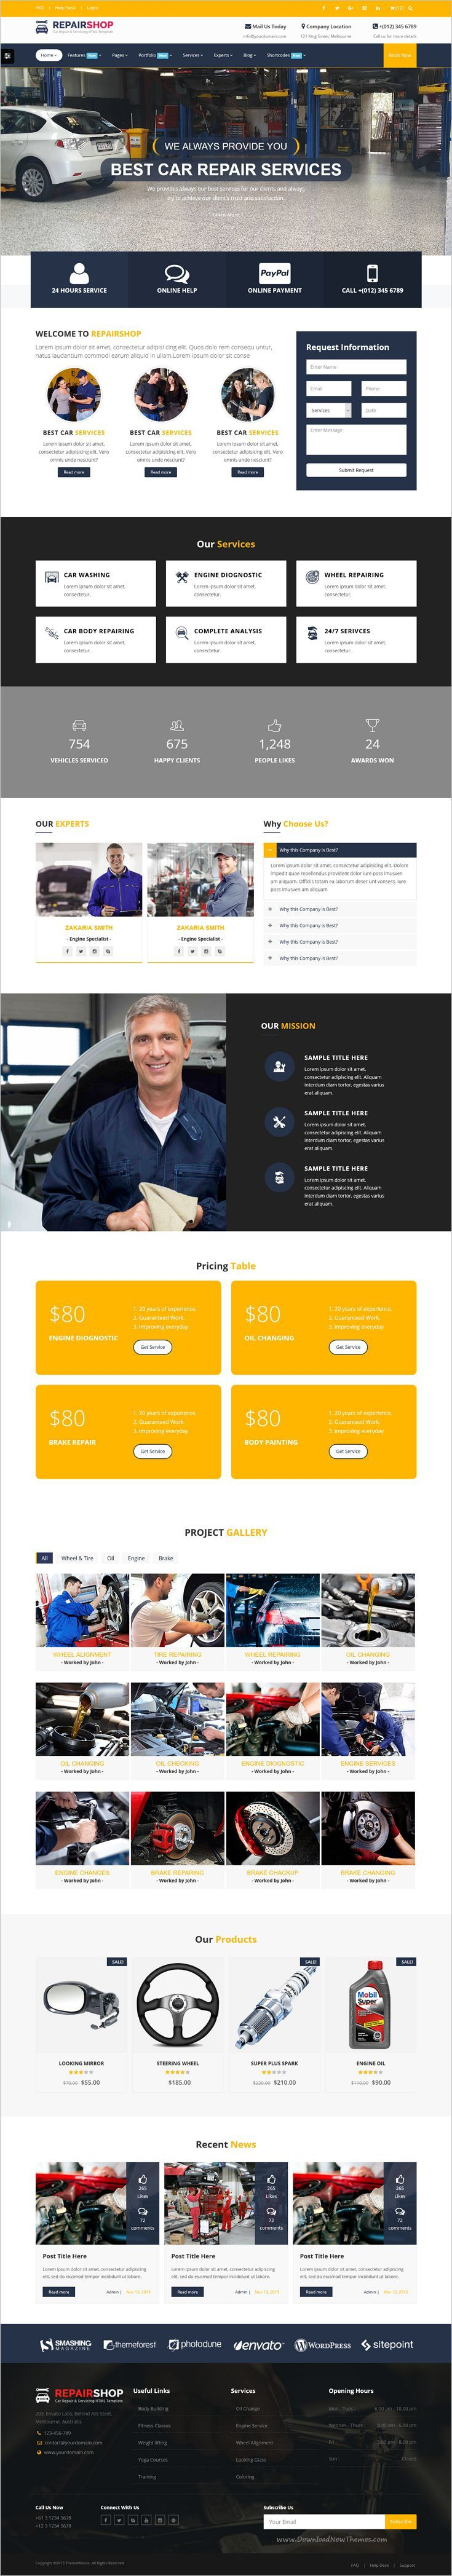 RepairShop is a wonderful responsive #HTML #Bootstrap template for #car repair, garage or auto center website download now➩ https://themeforest.net/item/repairshop-car-repair-car-wash-responsive-html5-template/18955715?ref=Datasata